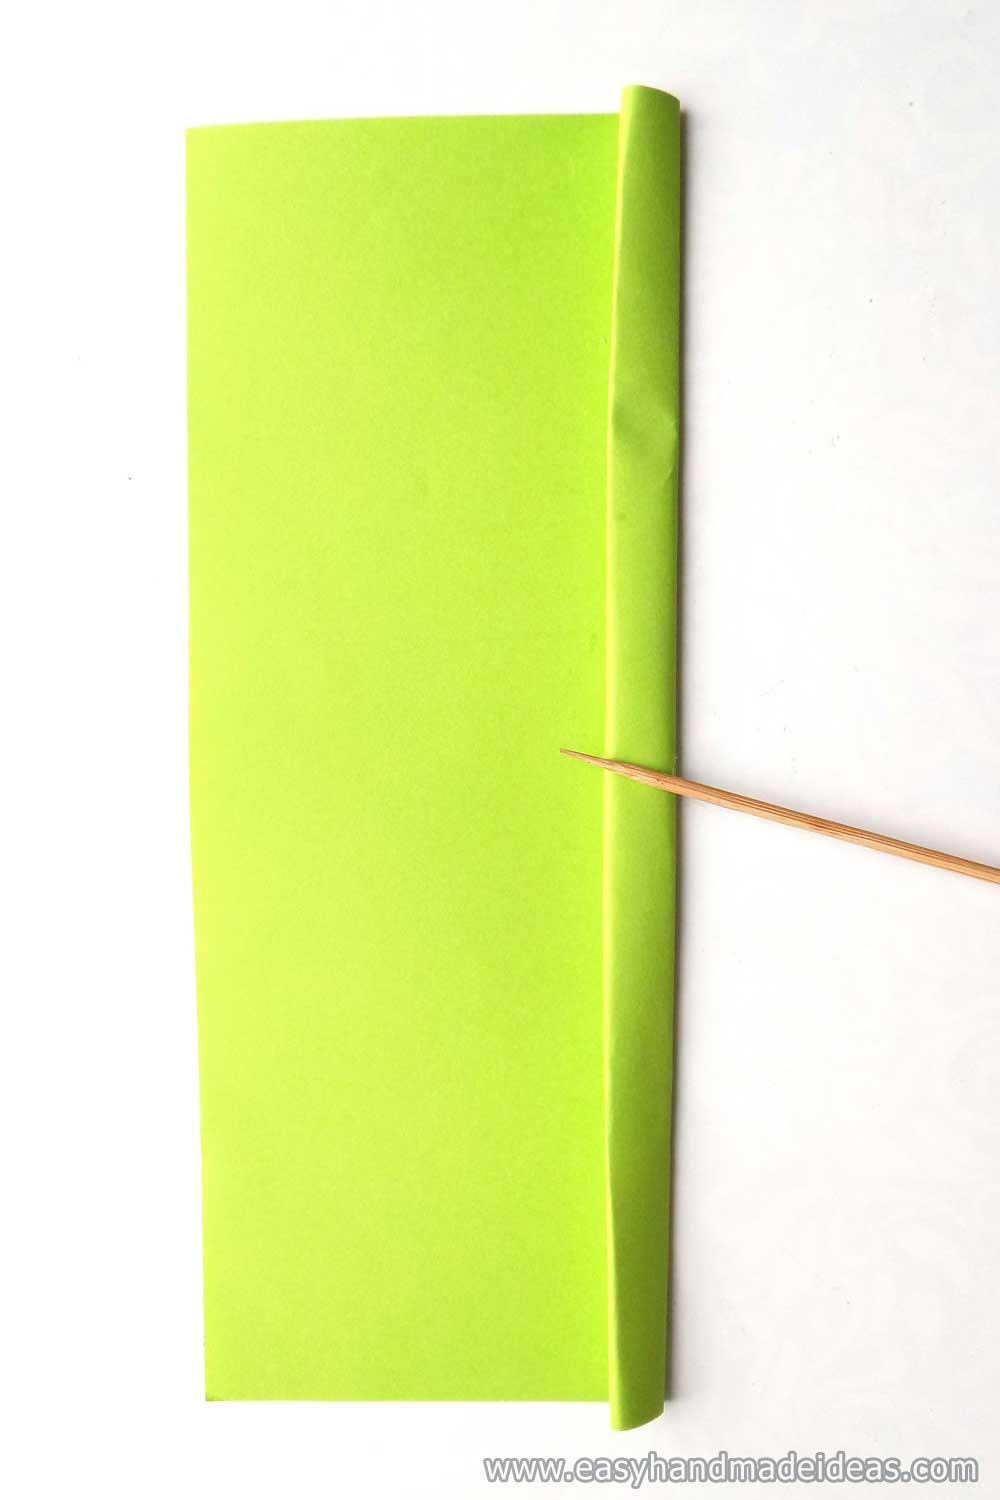 Creating a Paper Stalk